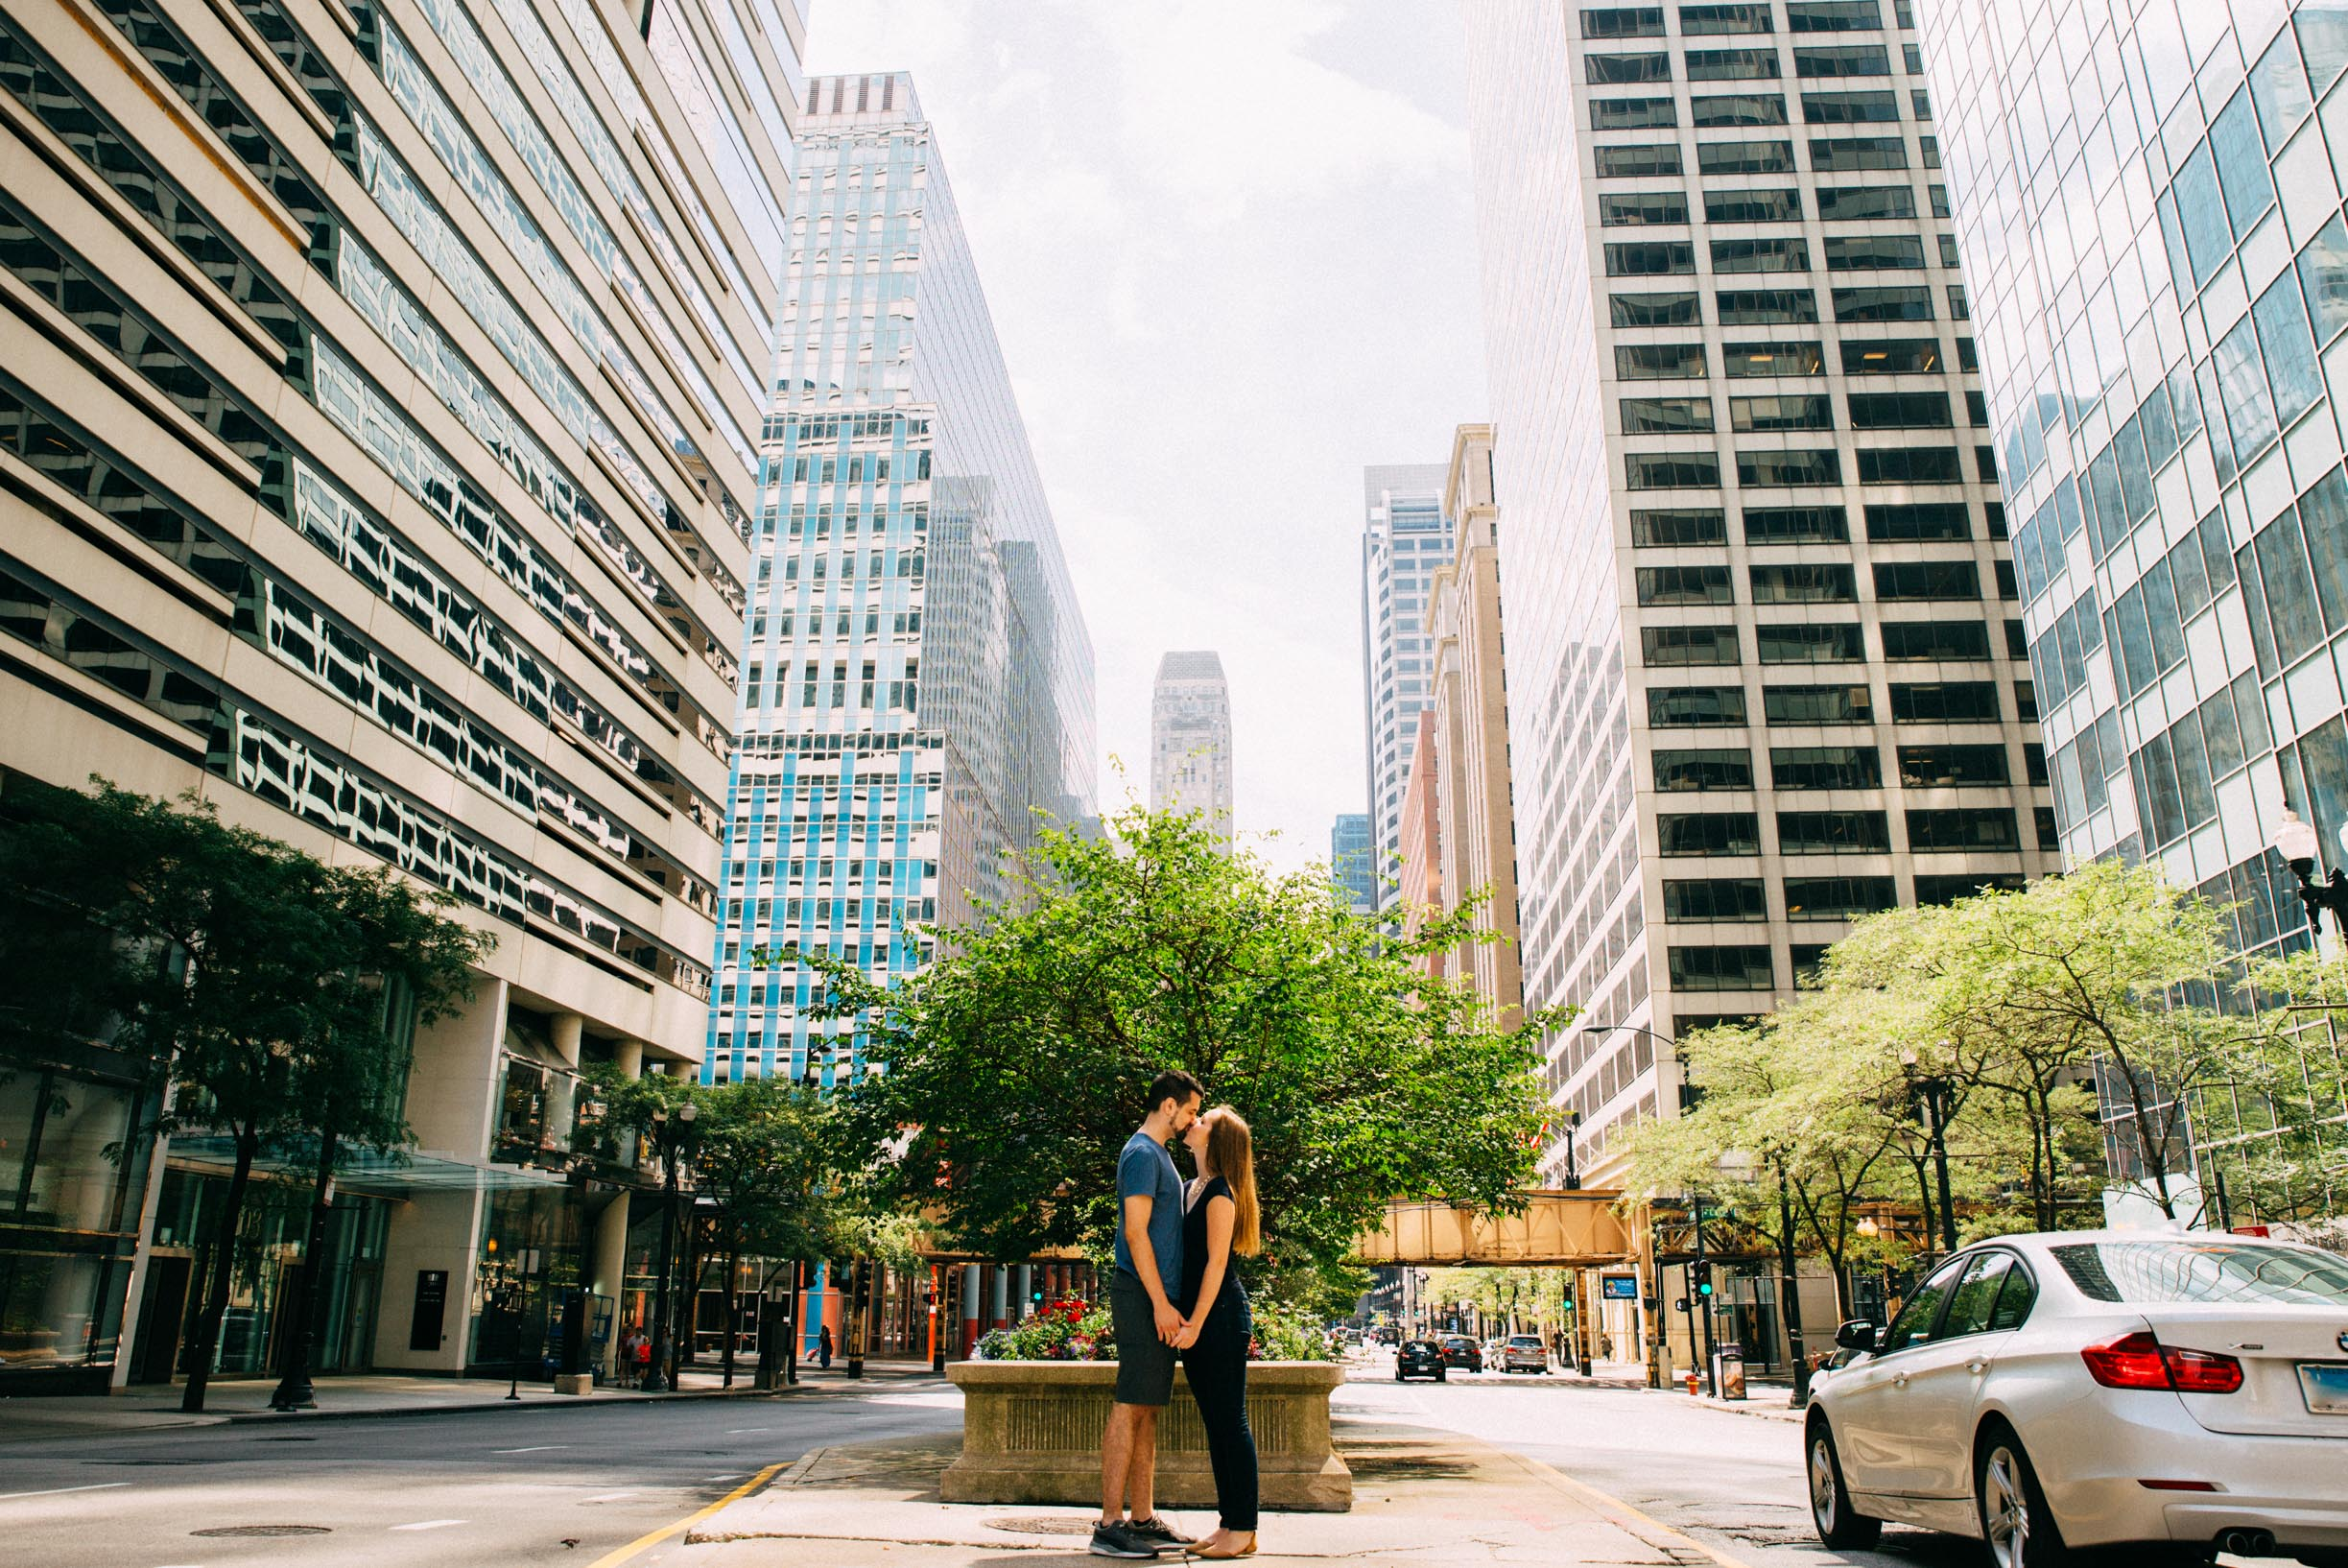 Ashley_Jacob_Chicago_Skyline_Couple_Portraits-9.jpg